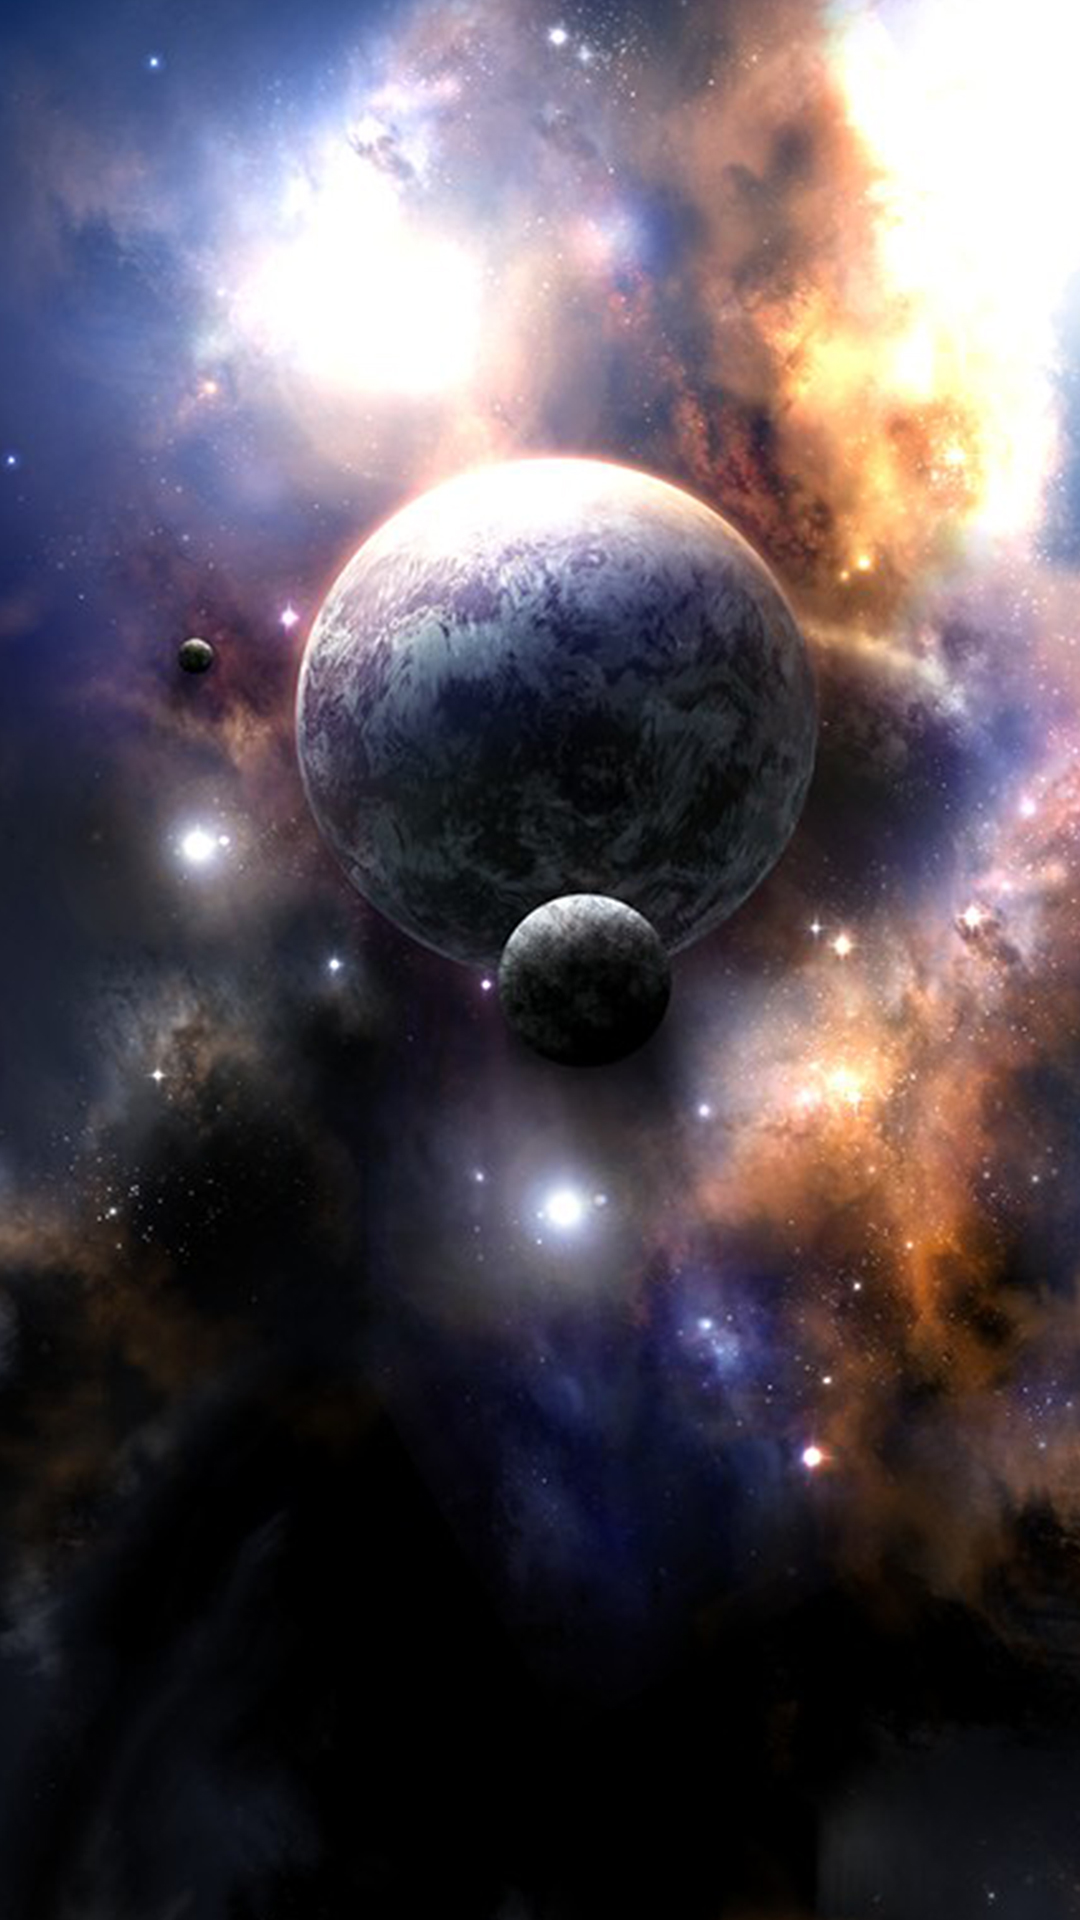 Ultra deep space hd wallpaper for your mobile phone - Deep blue space wallpaper ...